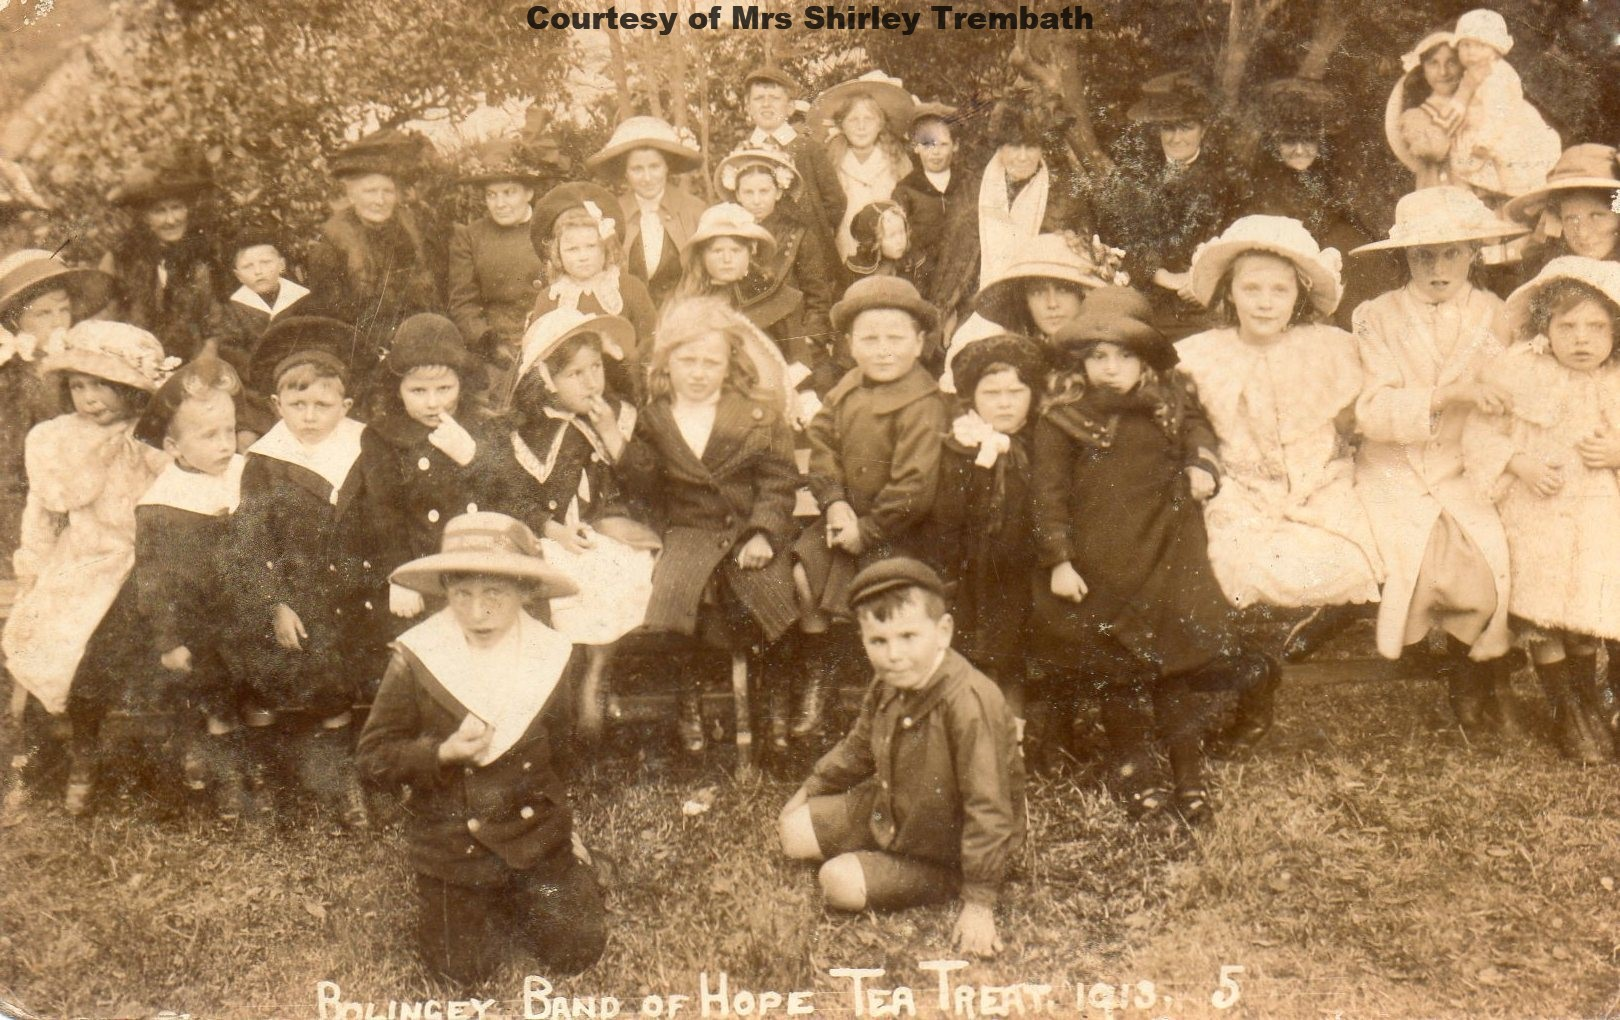 Bolingey Band of Hope 1912